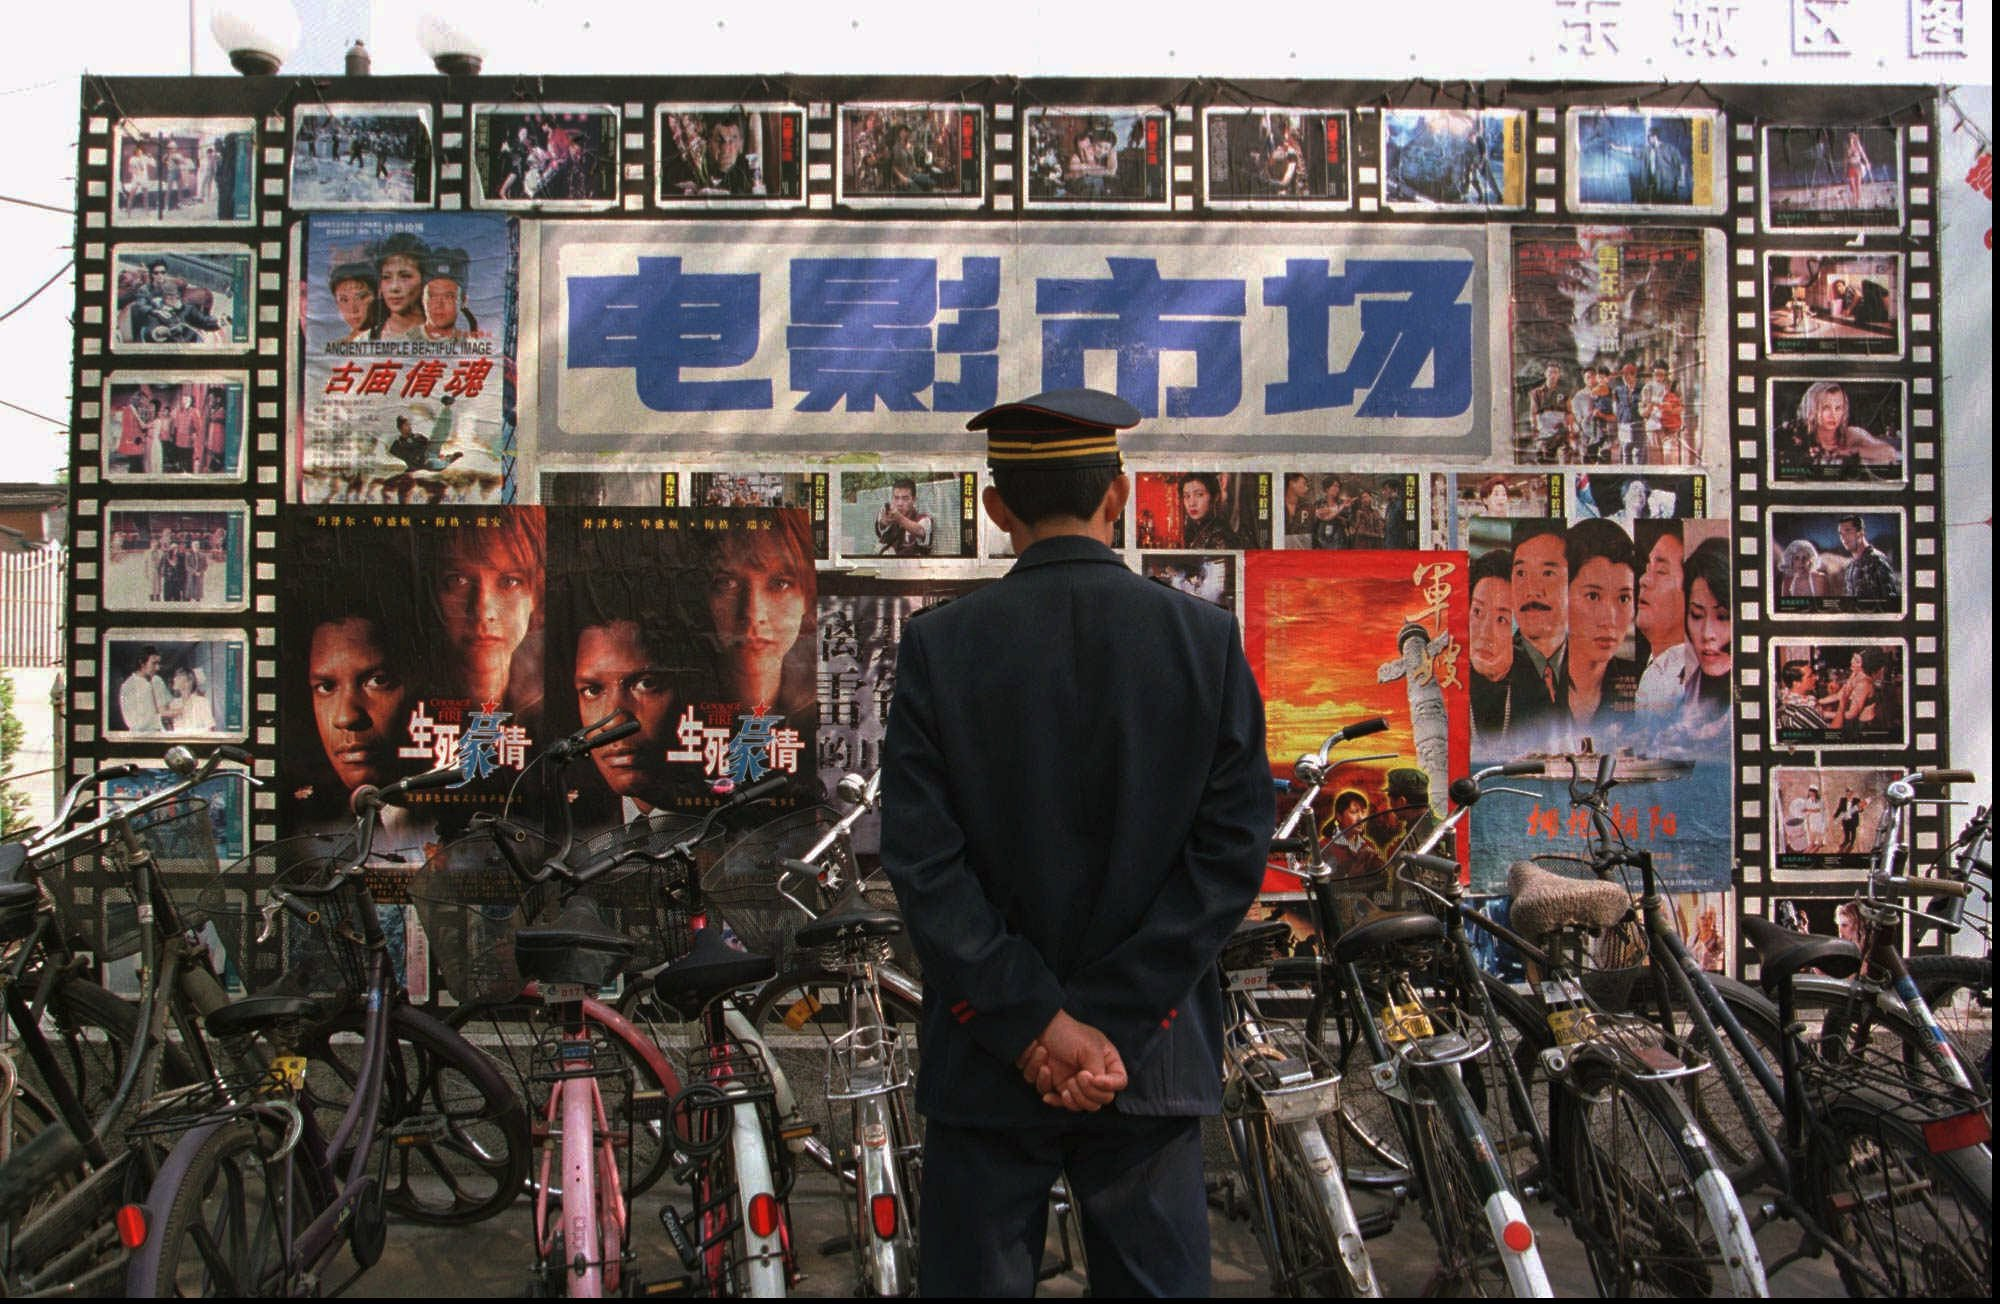 A security guard looks at a billboard full of movie posters outside a Beijing theatre Friday, April 25, 1997. Chinese can now watch a wide selection of movies, ranging from locally produced communist propaganda films to Hollywood blockbusters.